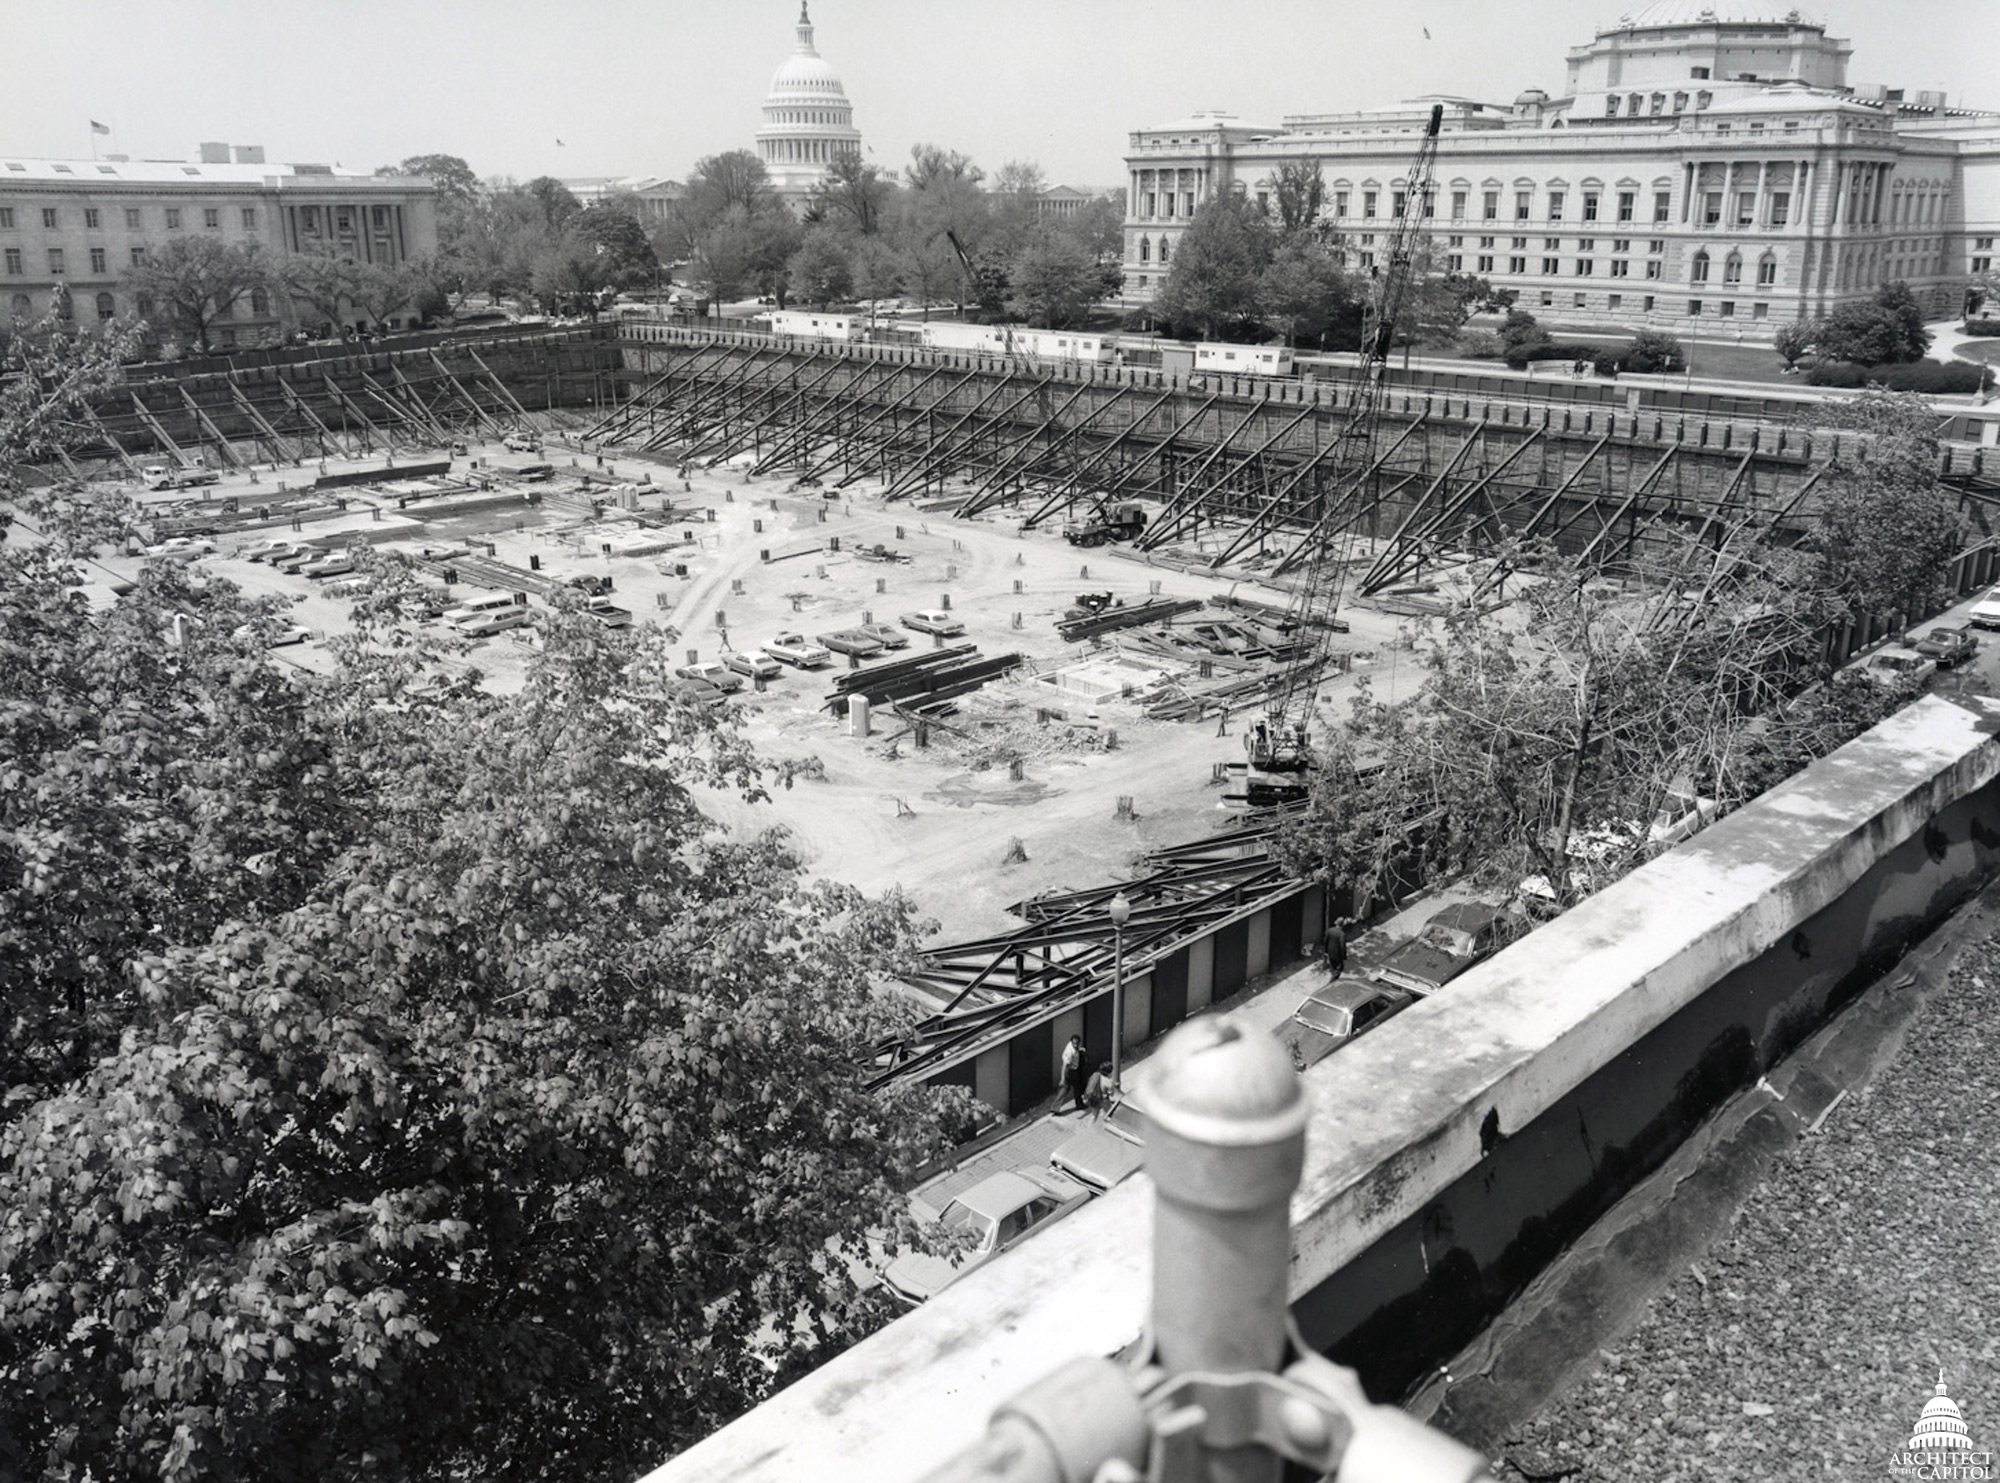 Scene from construction of the James Madison Memorial Building.